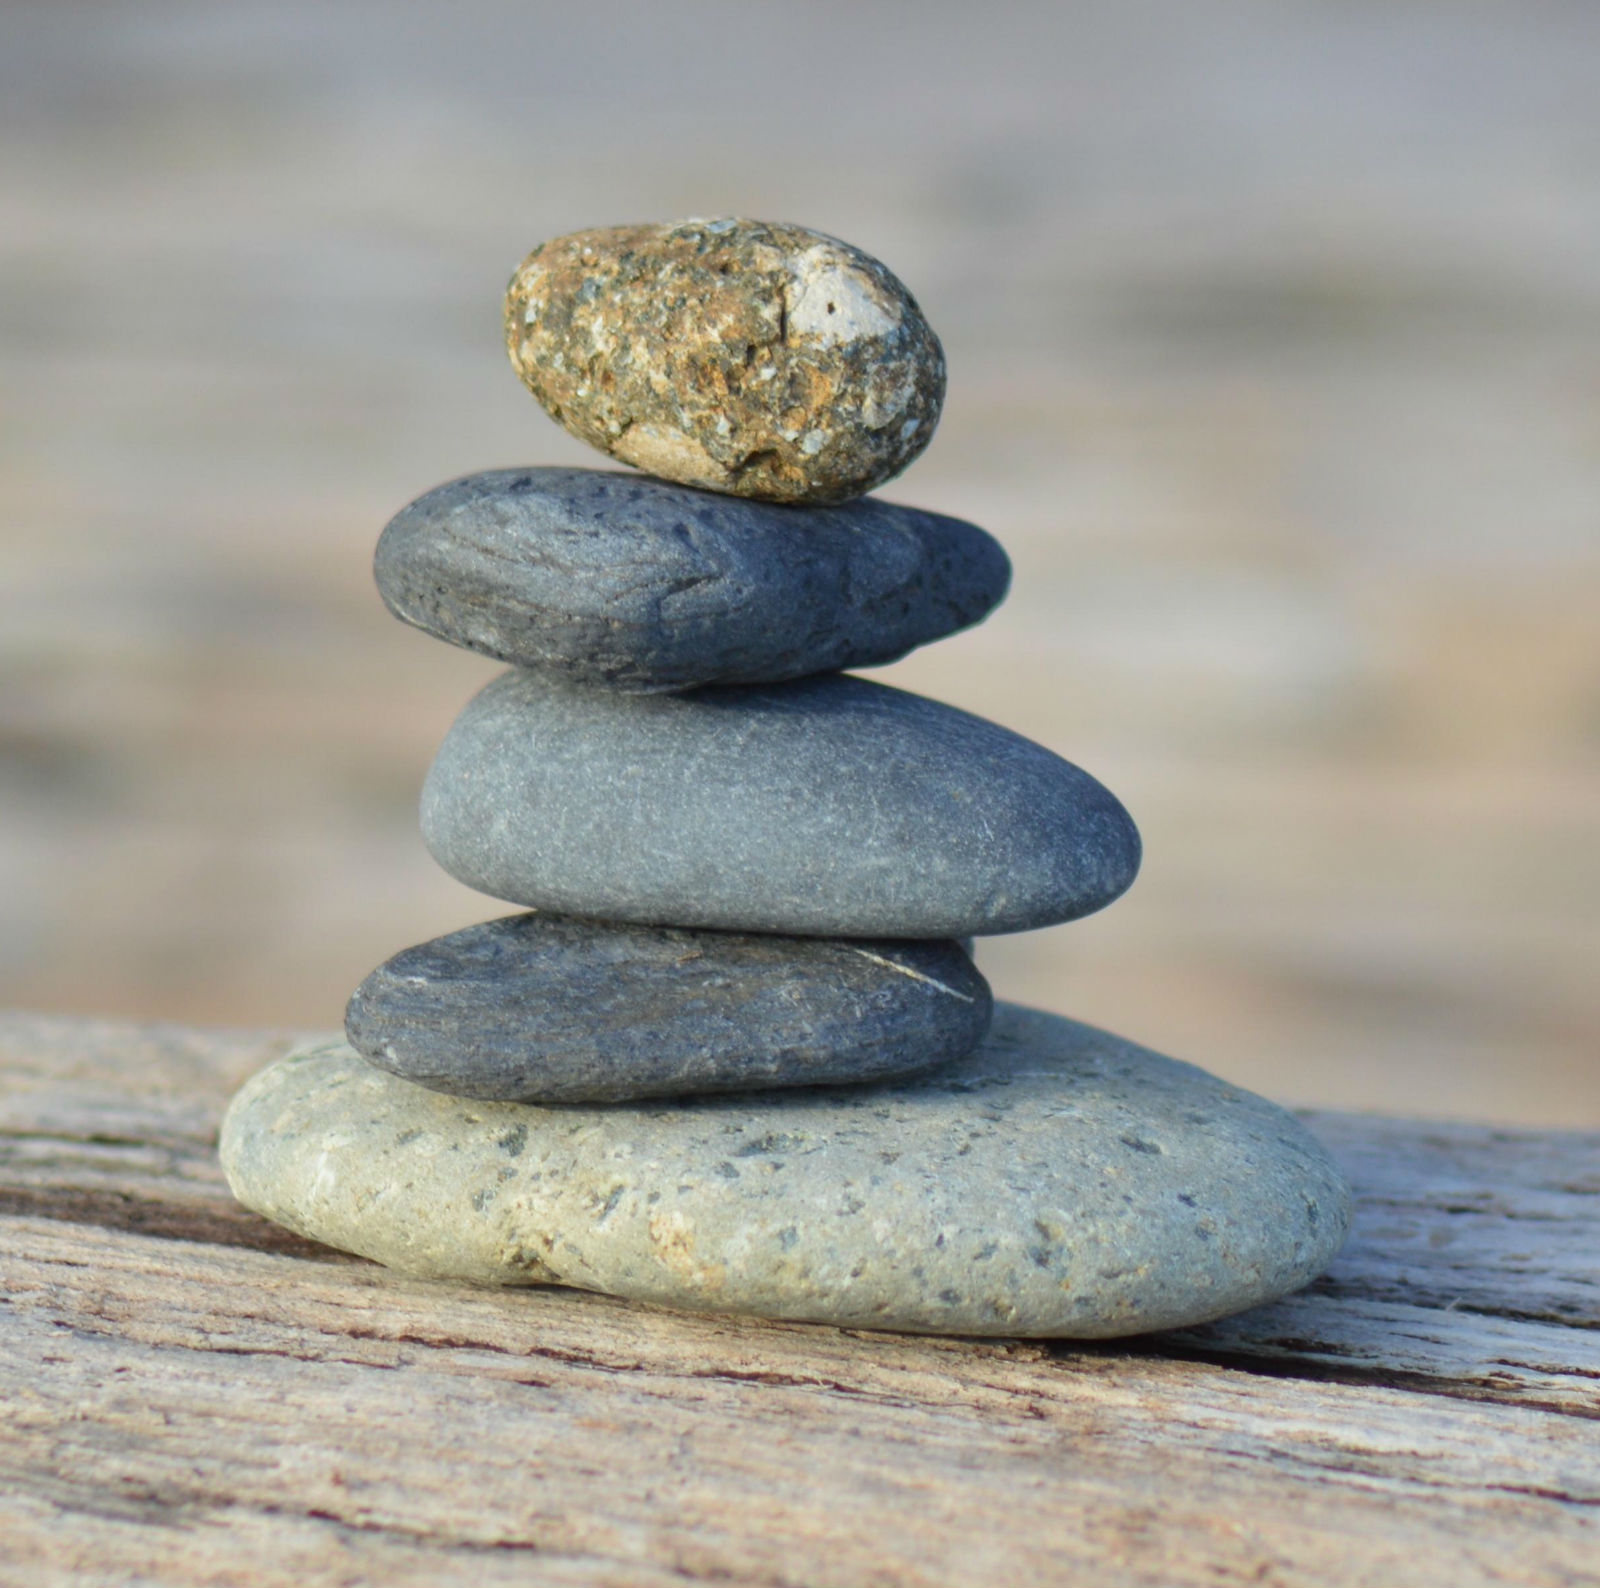 stones_balanced_on_wood_cropped_.jpg